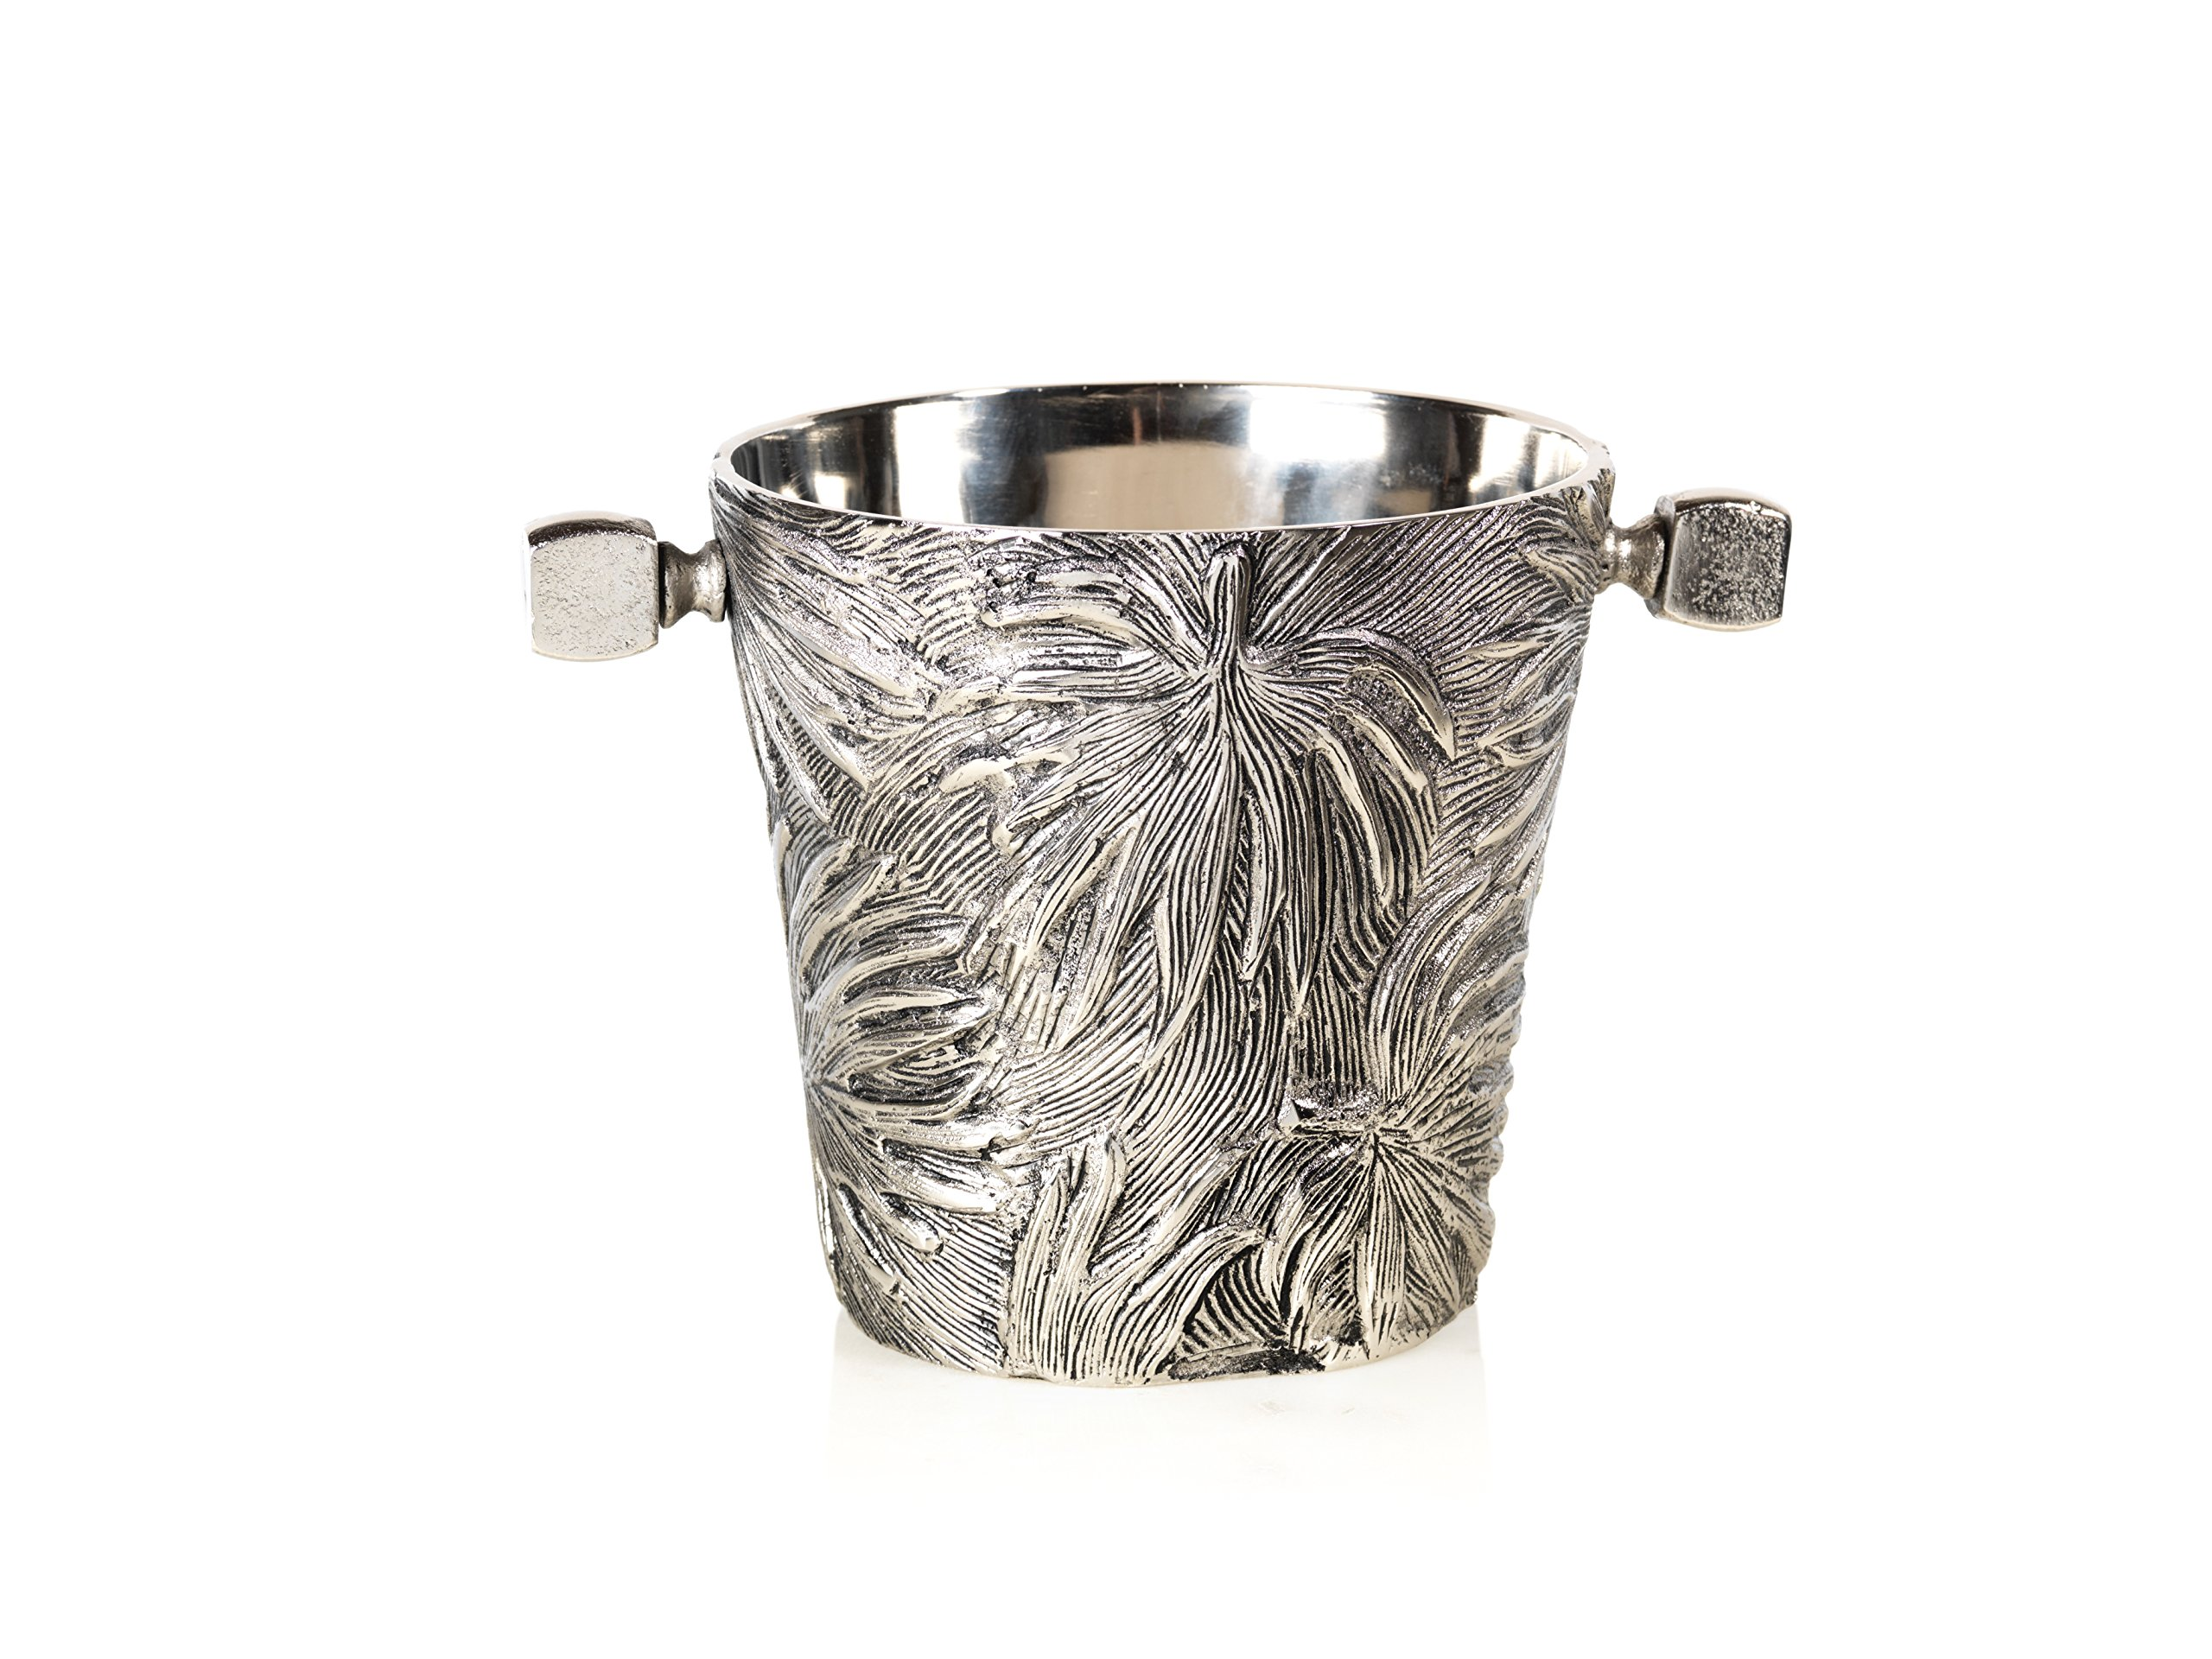 Zodax in-6286 Palm 7.5'' Tall Aluminum Wine Cooler, Antique Nickel by Zodax